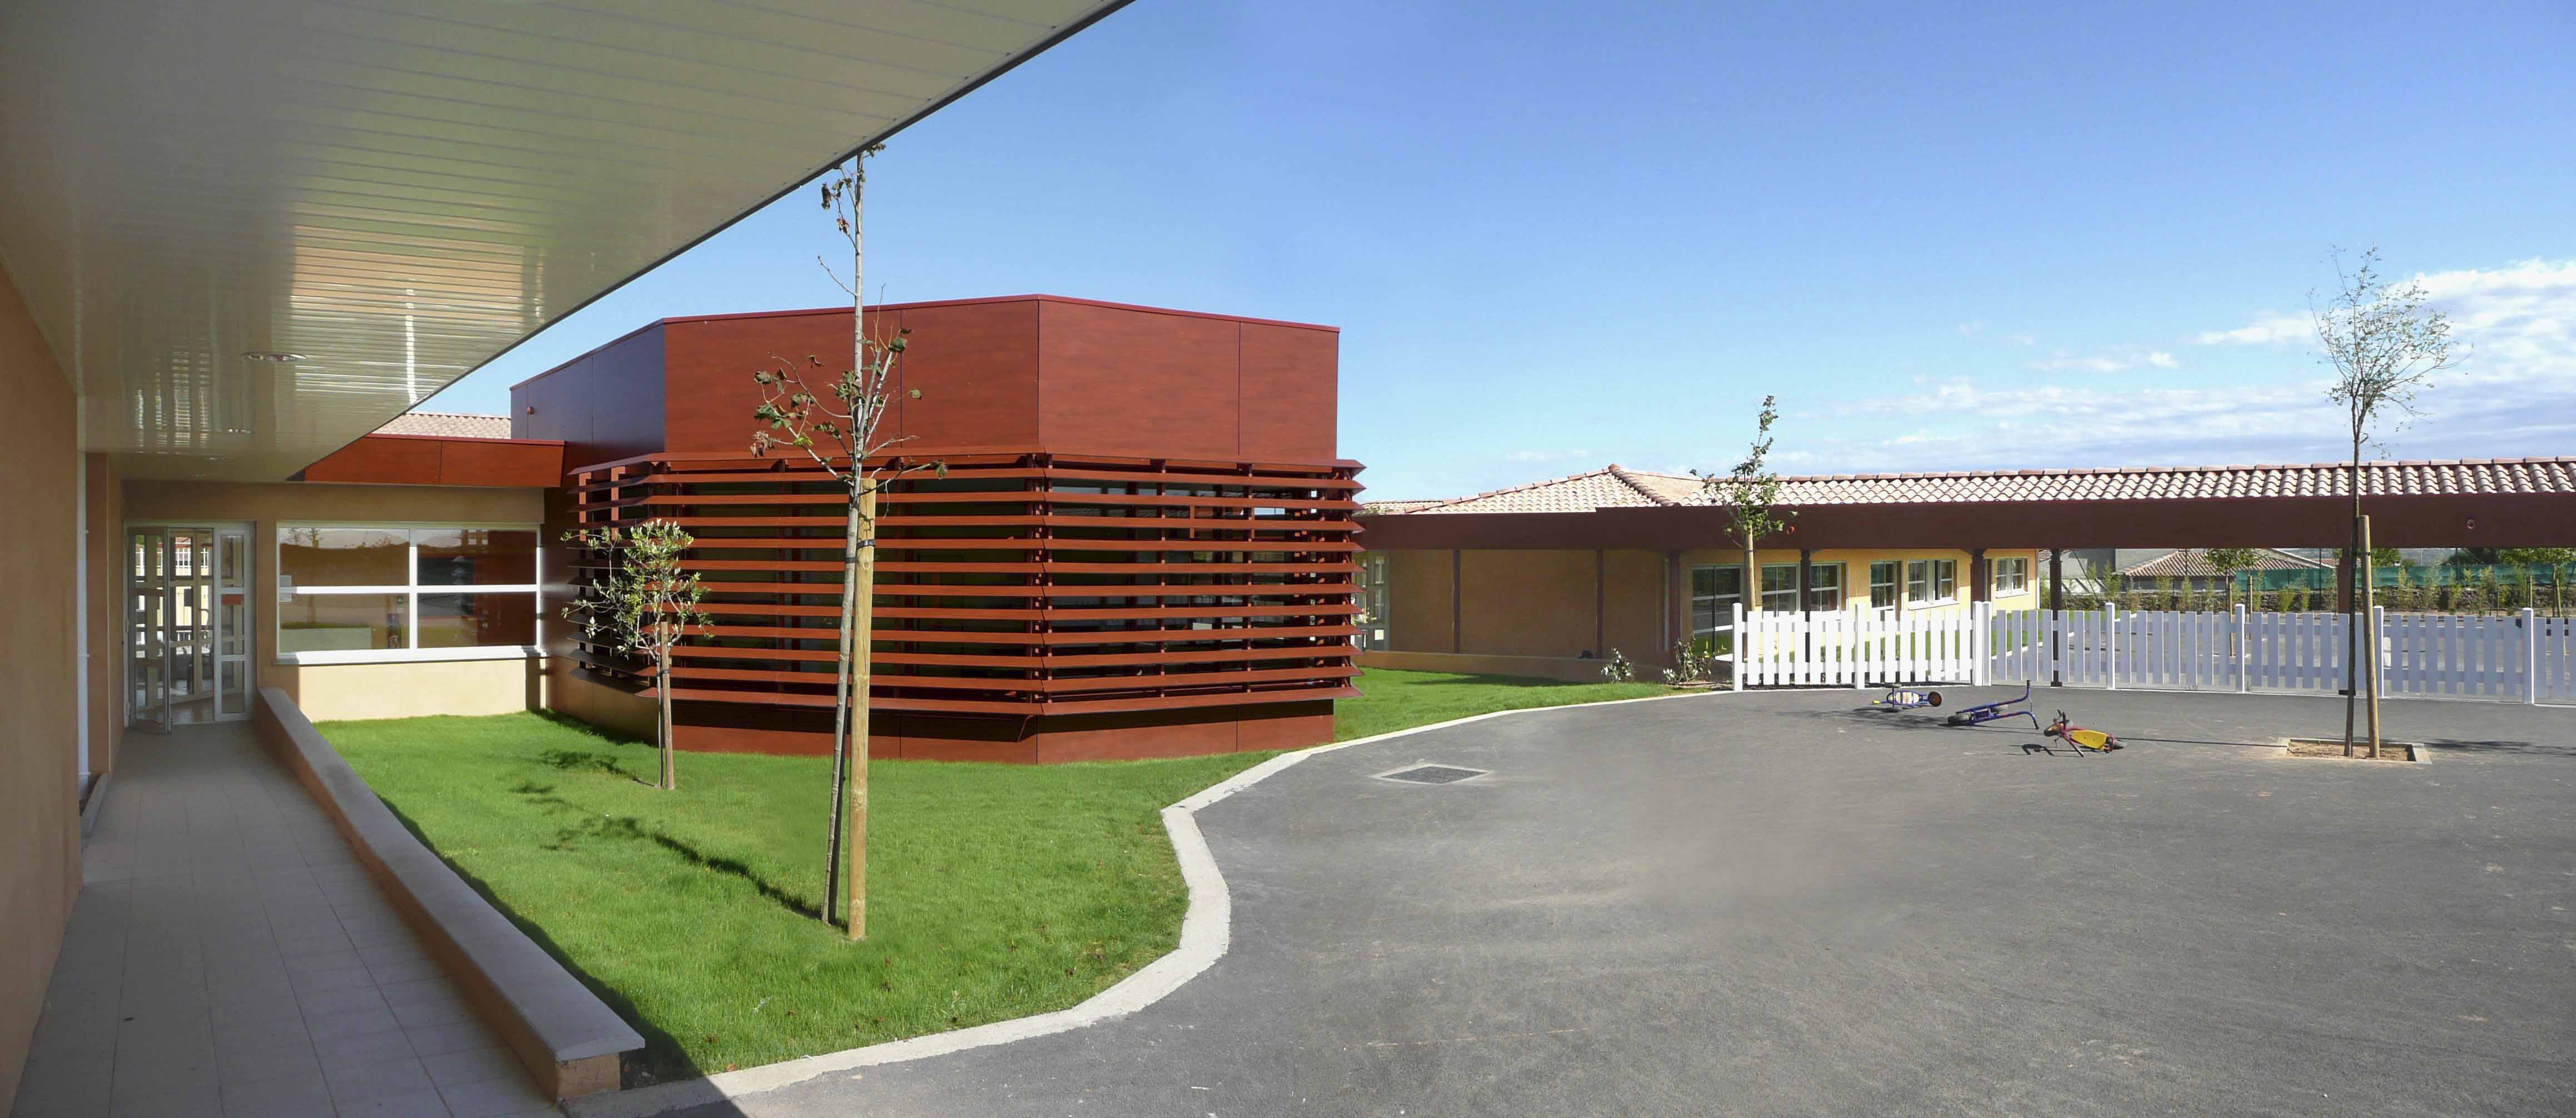 Groupe scolaire herault BF Architecture 1